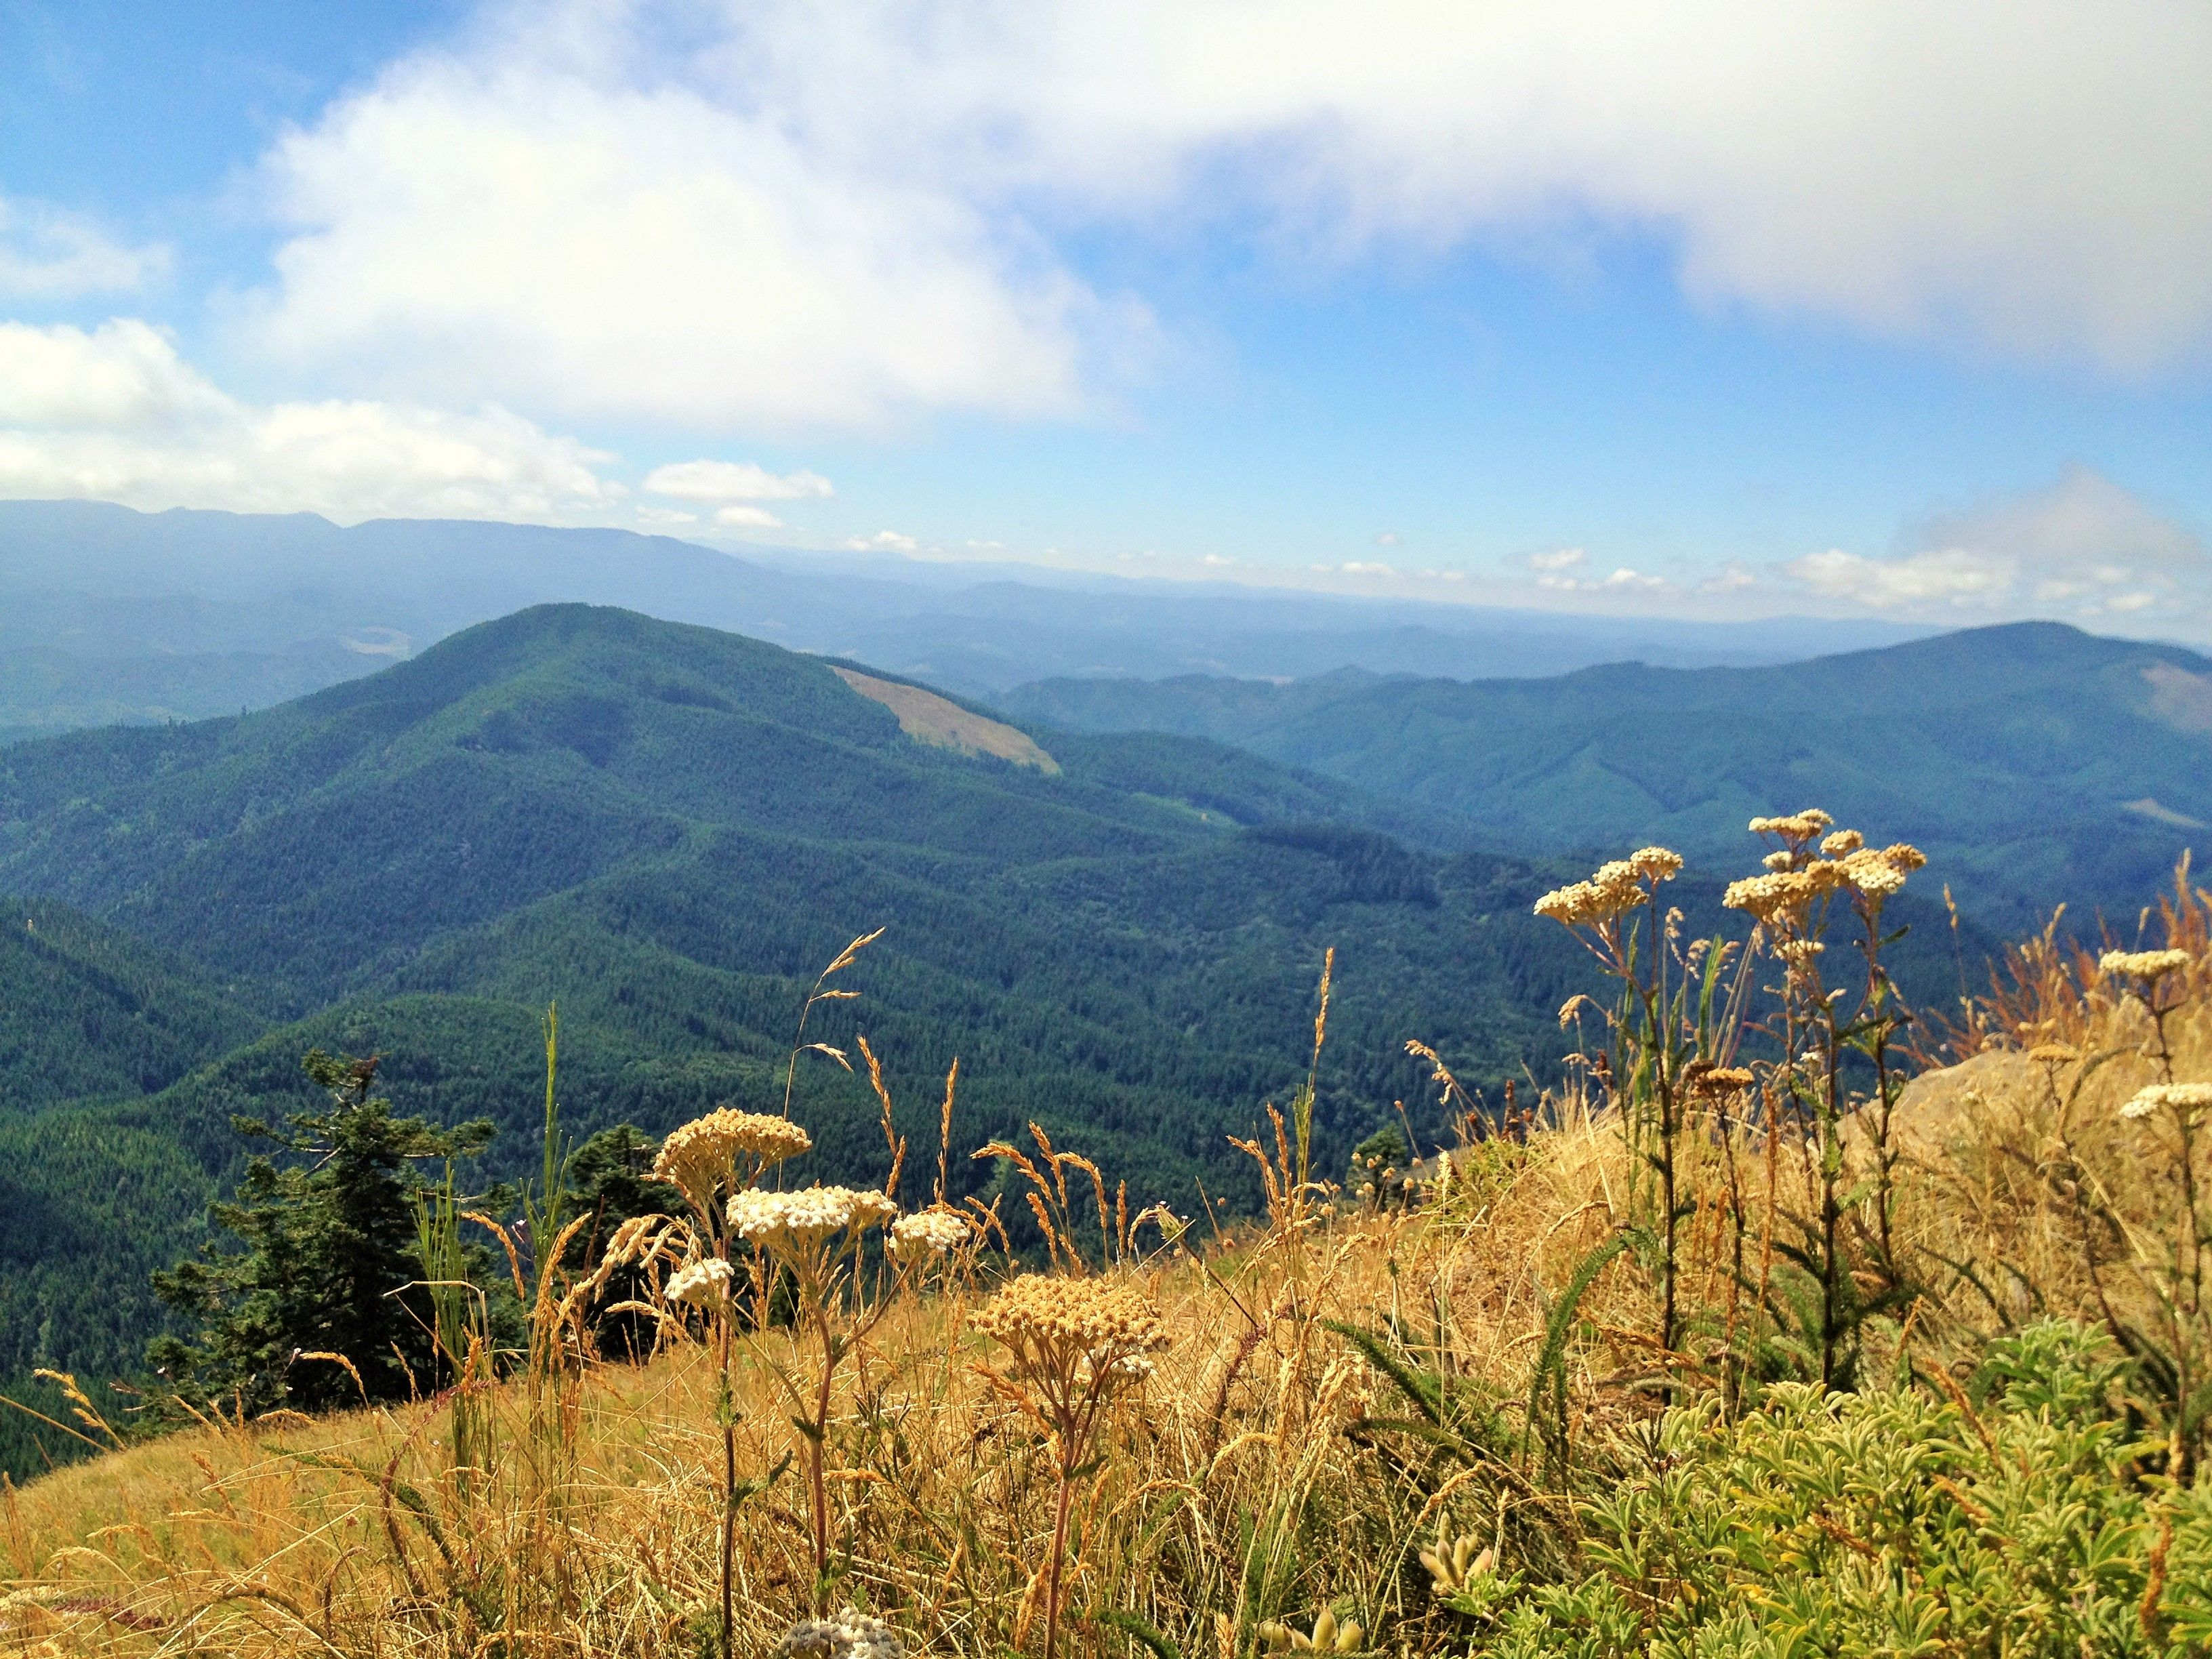 Mary's Peak would be a fun and beautiful day hike.